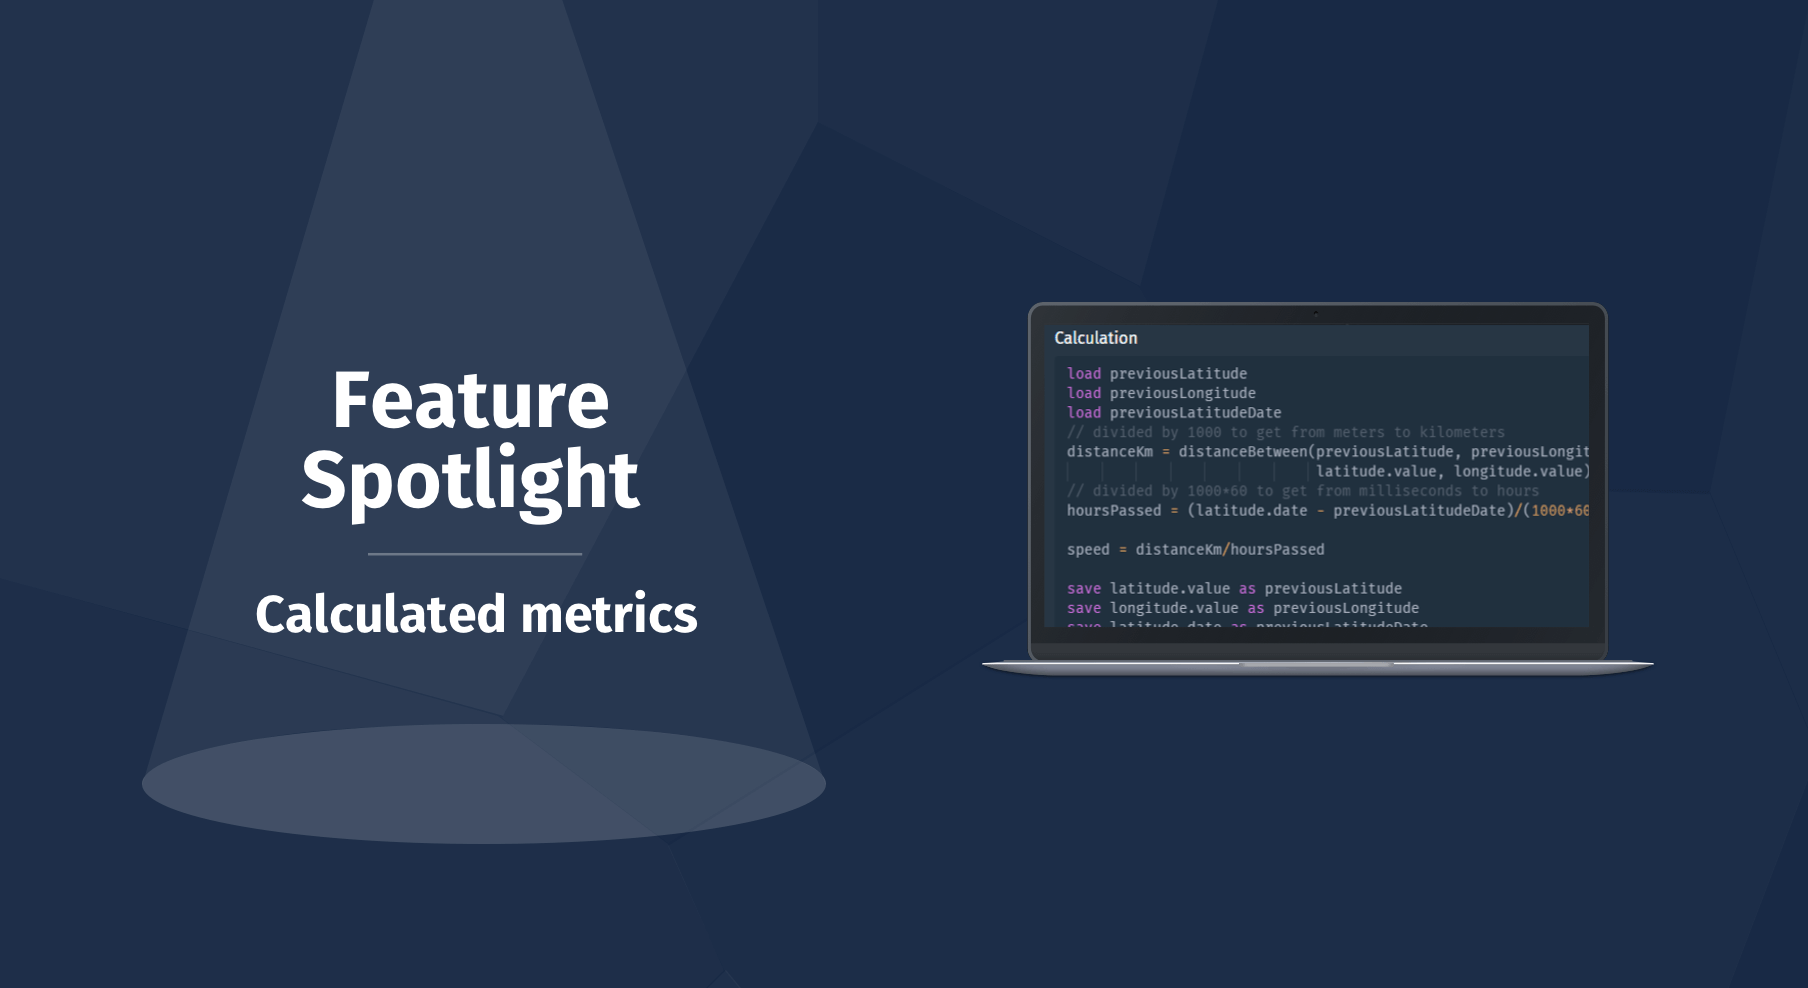 Feature spotlight calculated metric